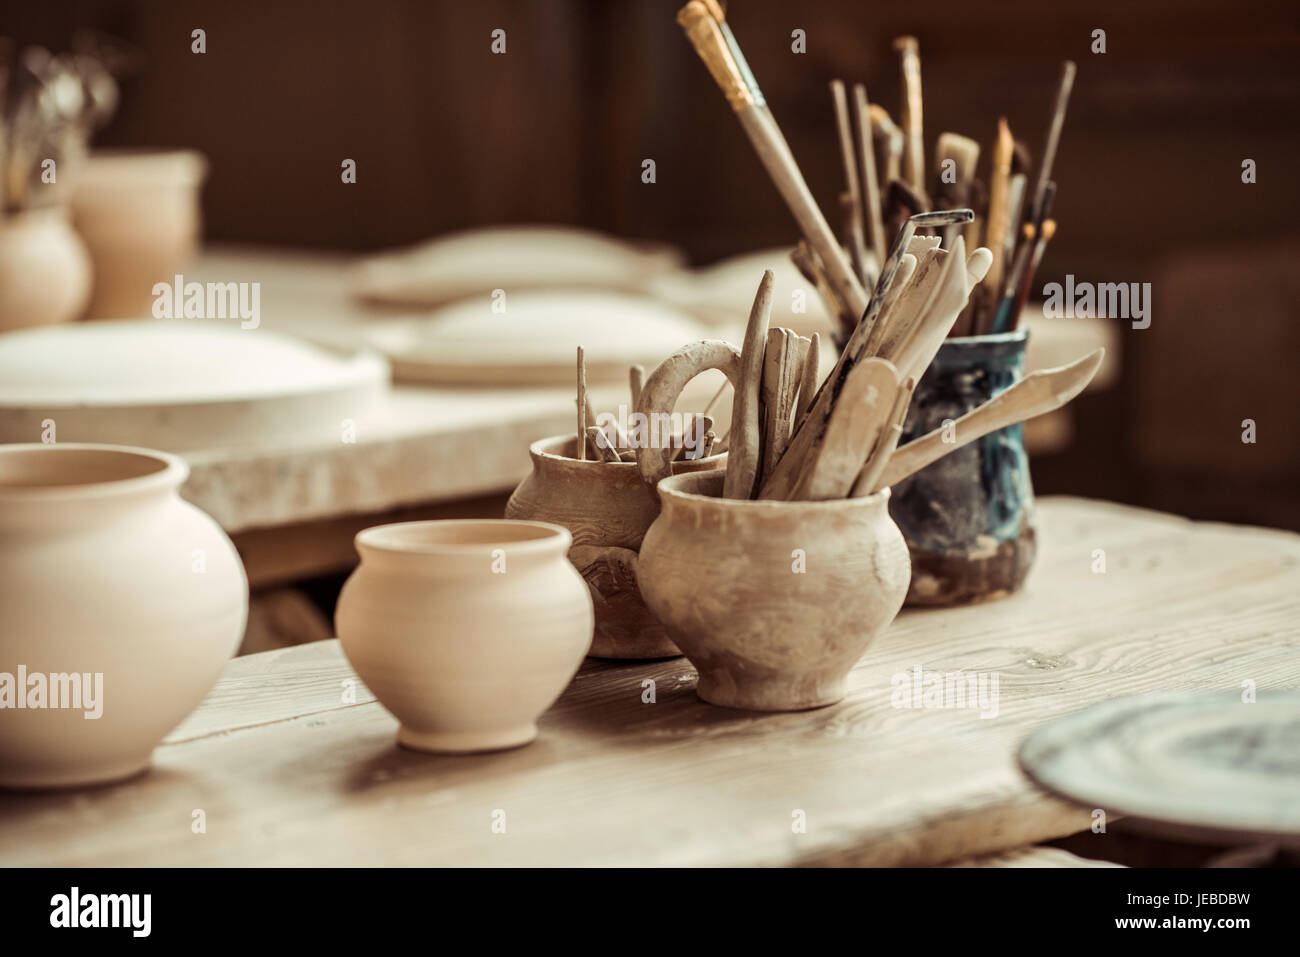 Close up of paint brushes with pottery tools in bowls on table - Stock Image